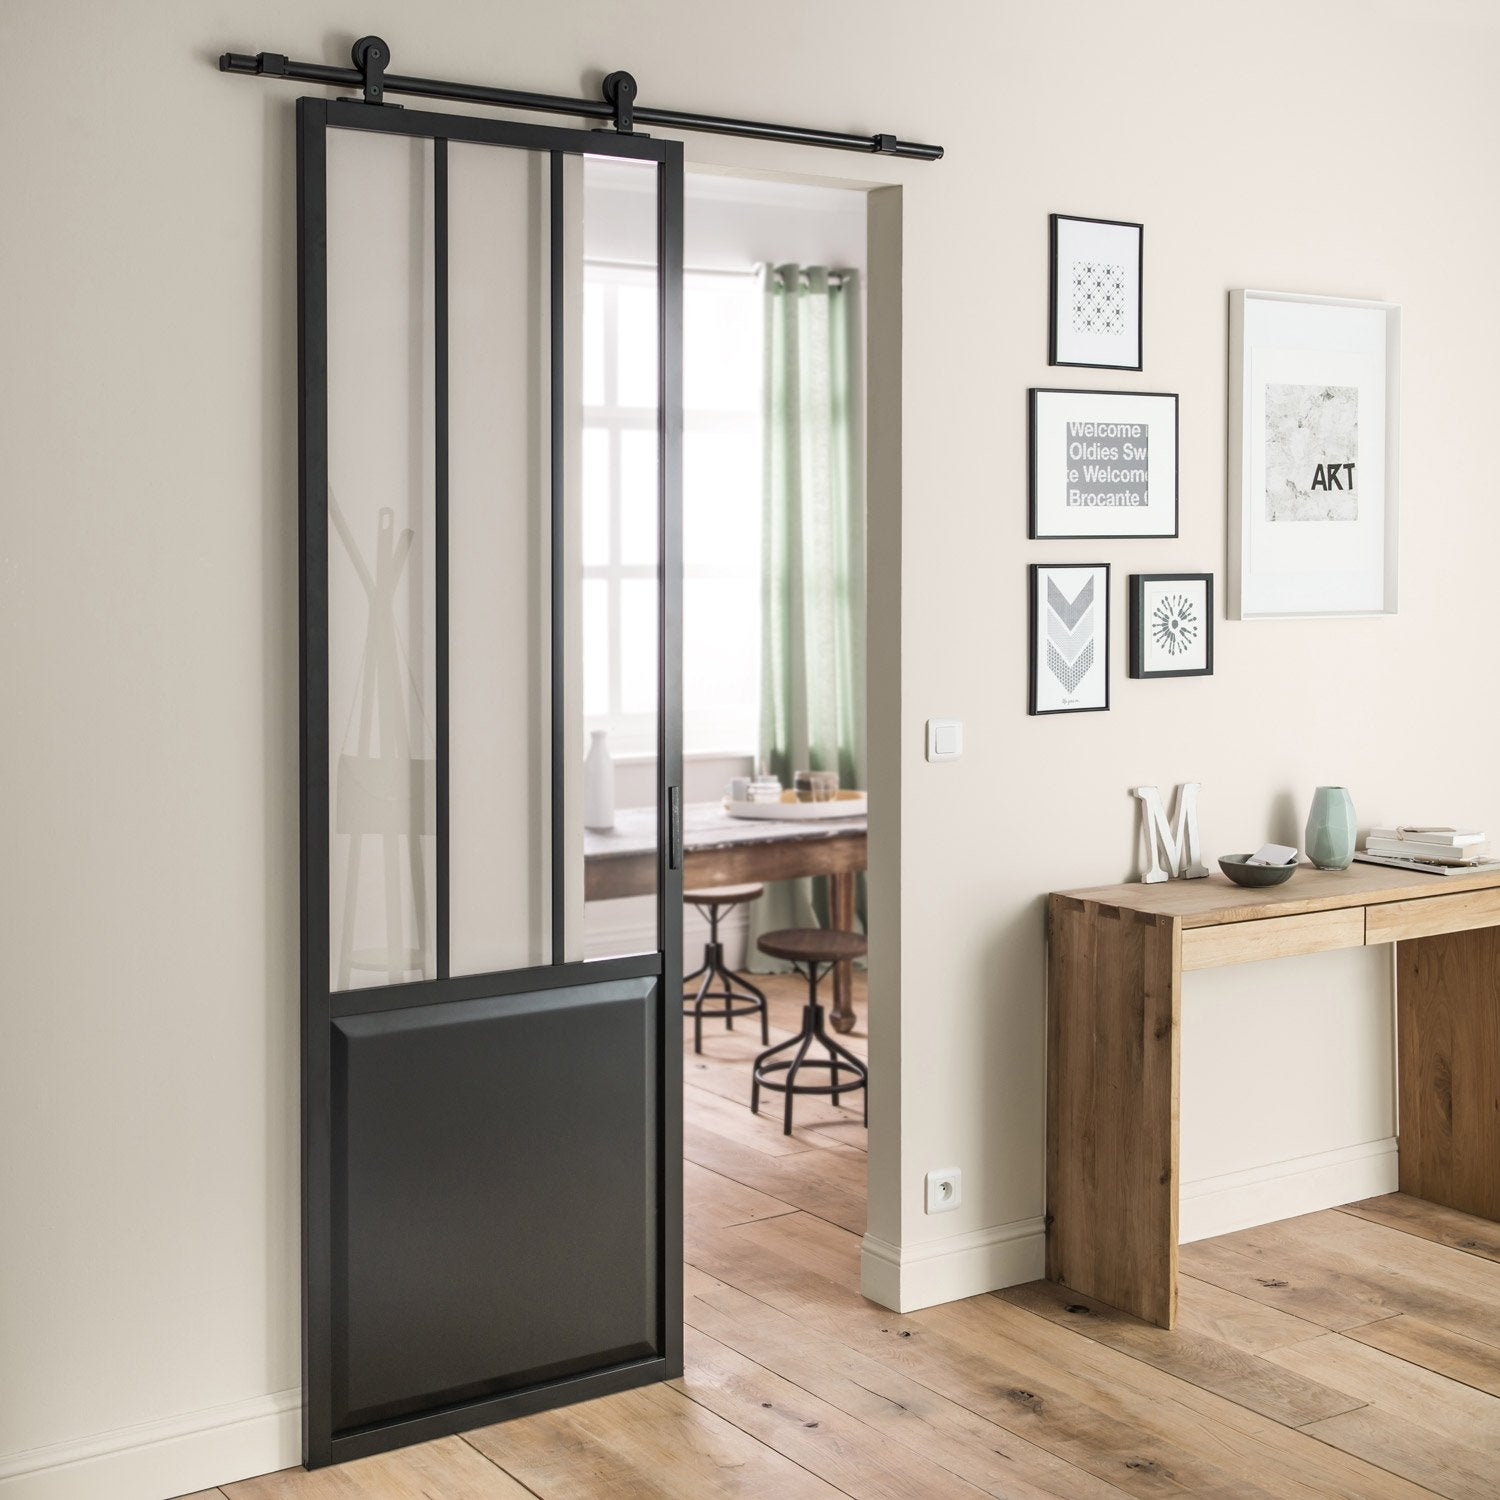 Ensemble porte coulissante atelier mdf rev tu avec le rail for Porte coulissante miroir leroy merlin